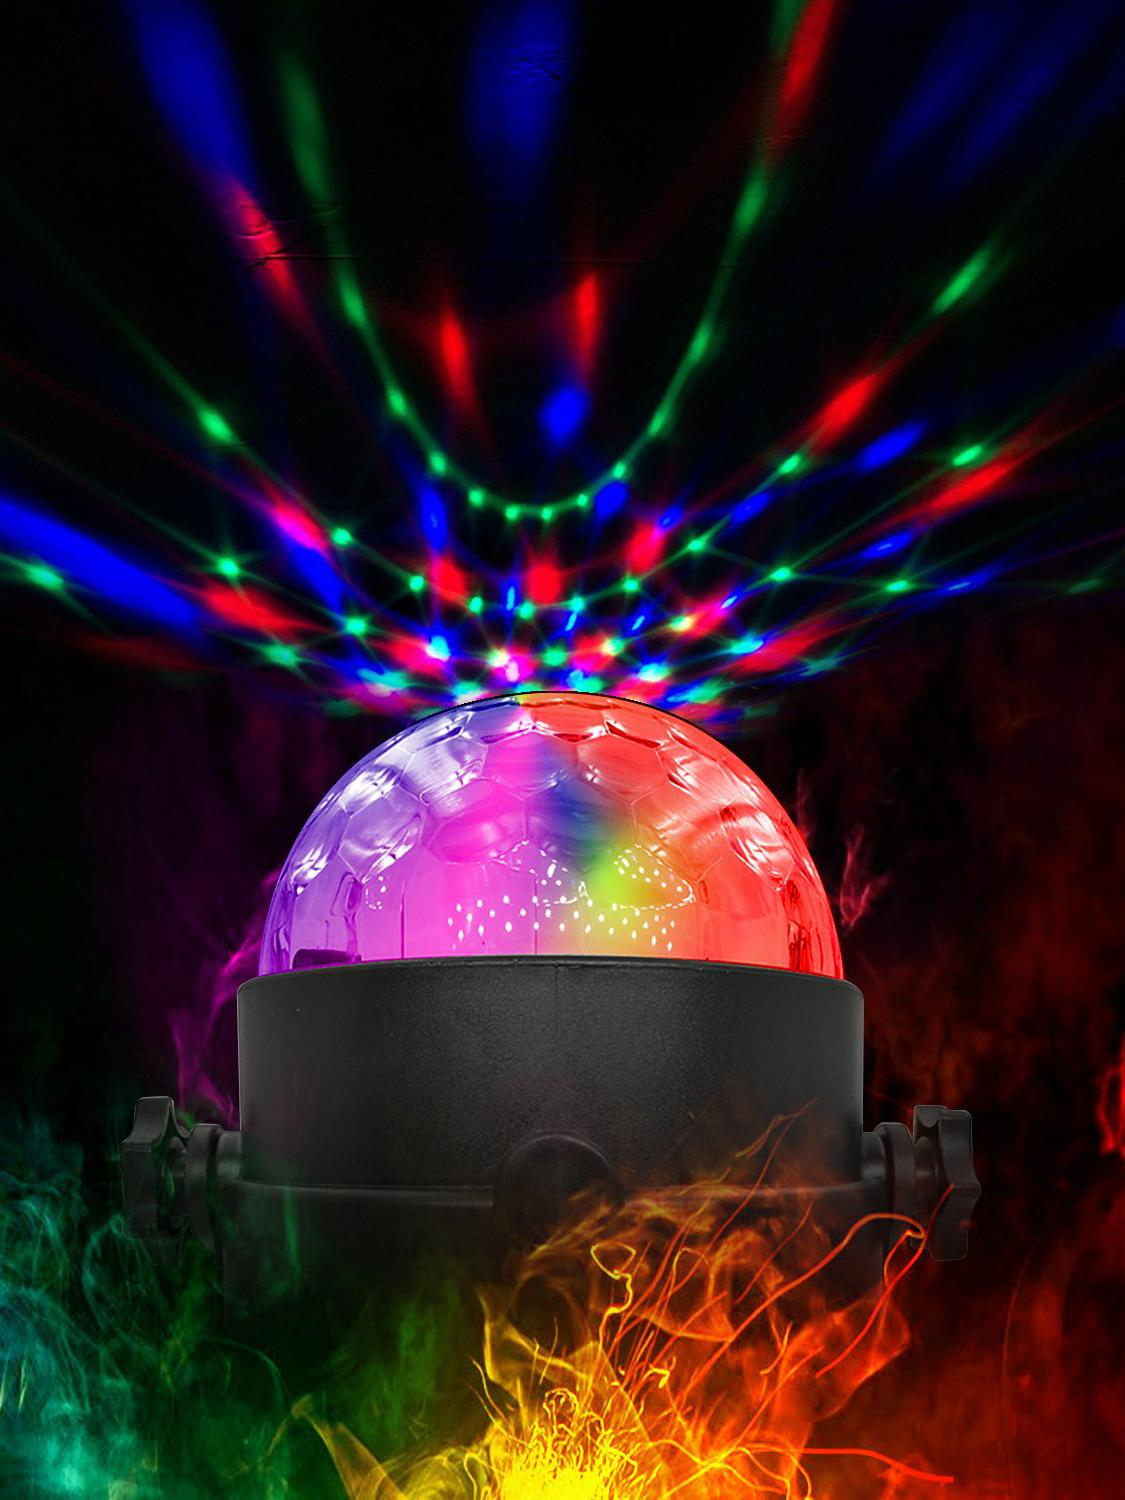 Party-Lights Disco-Ball LED Strobe Christmas Sound Wedding-Show Home-Ktv Activated-Rotating